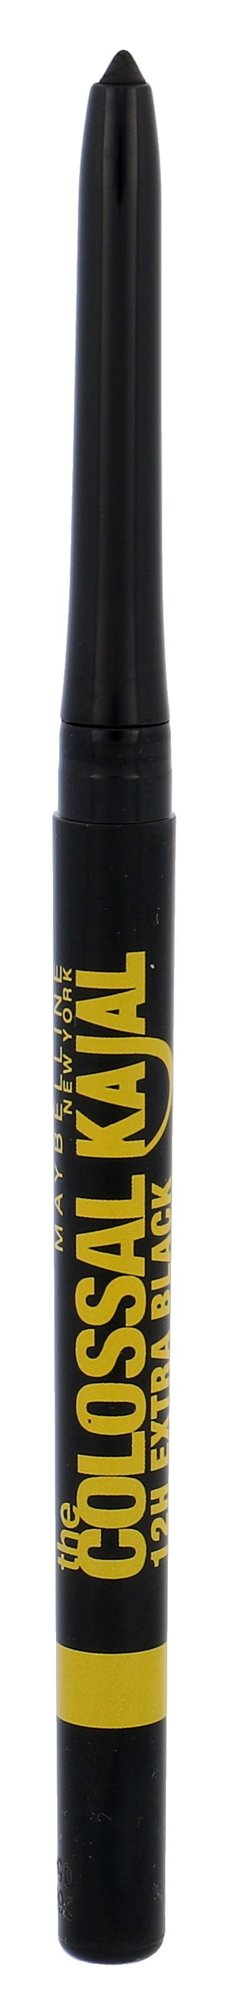 Maybelline Colossal Kajal 12h Eye Pencil Cosmetic 0,35g Extra Black